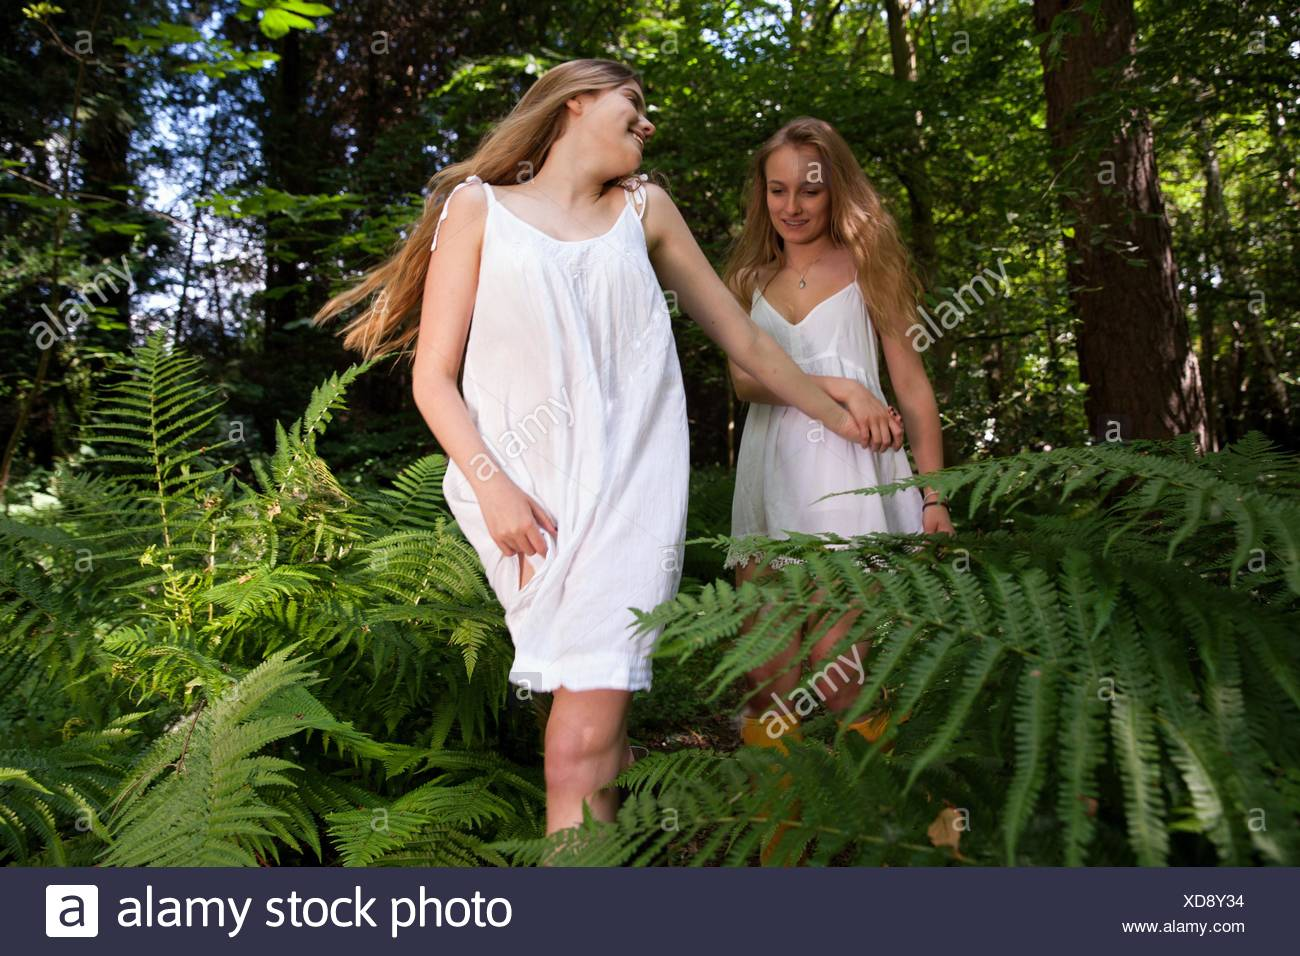 Two teenage girls wandering through forest - Stock Image